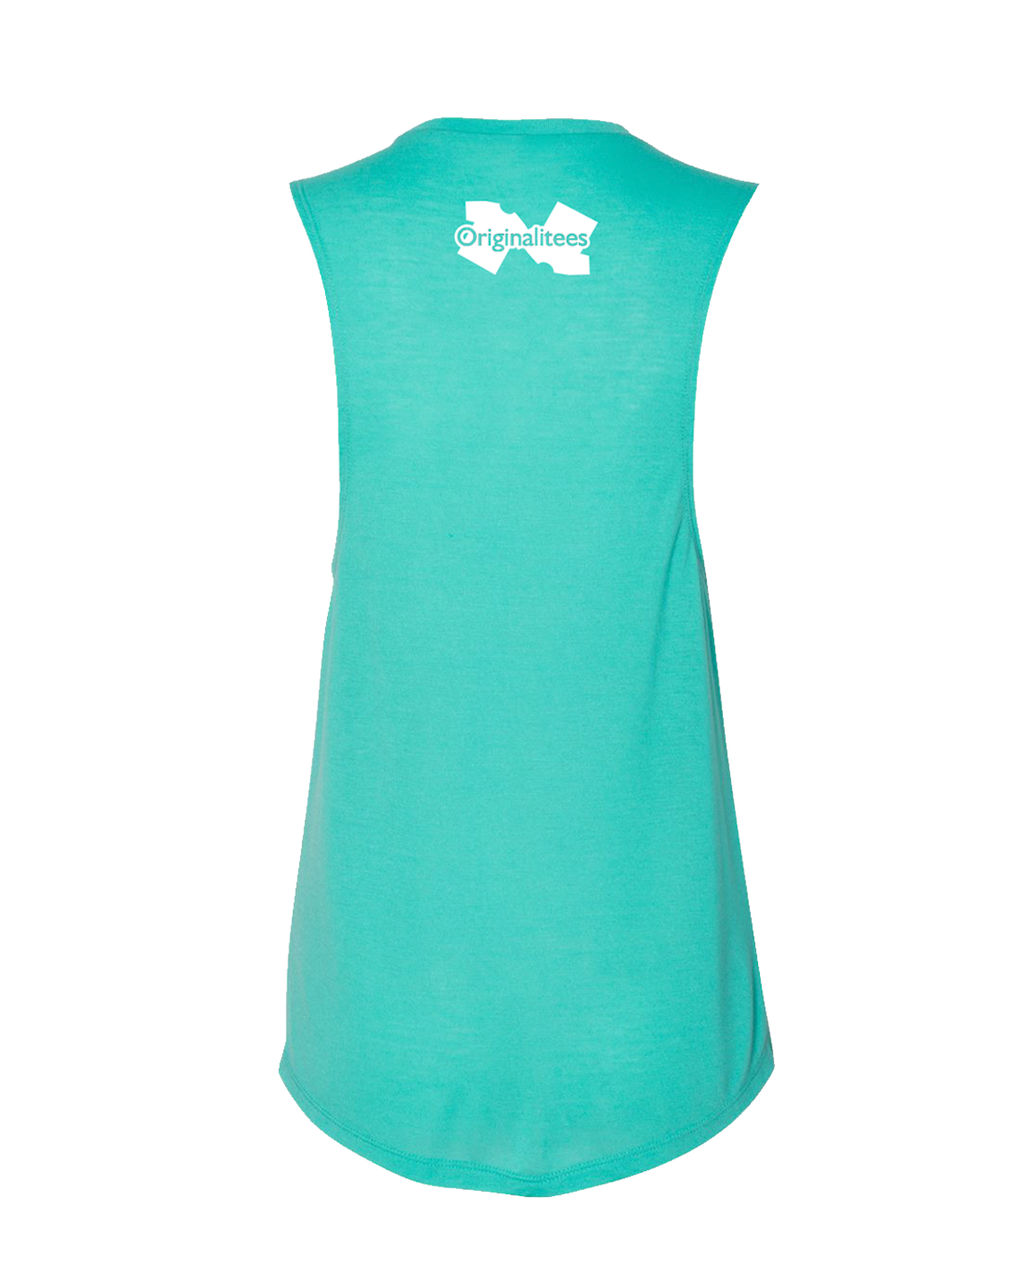 Ohio: Born & Raised Muscle tank - Teal